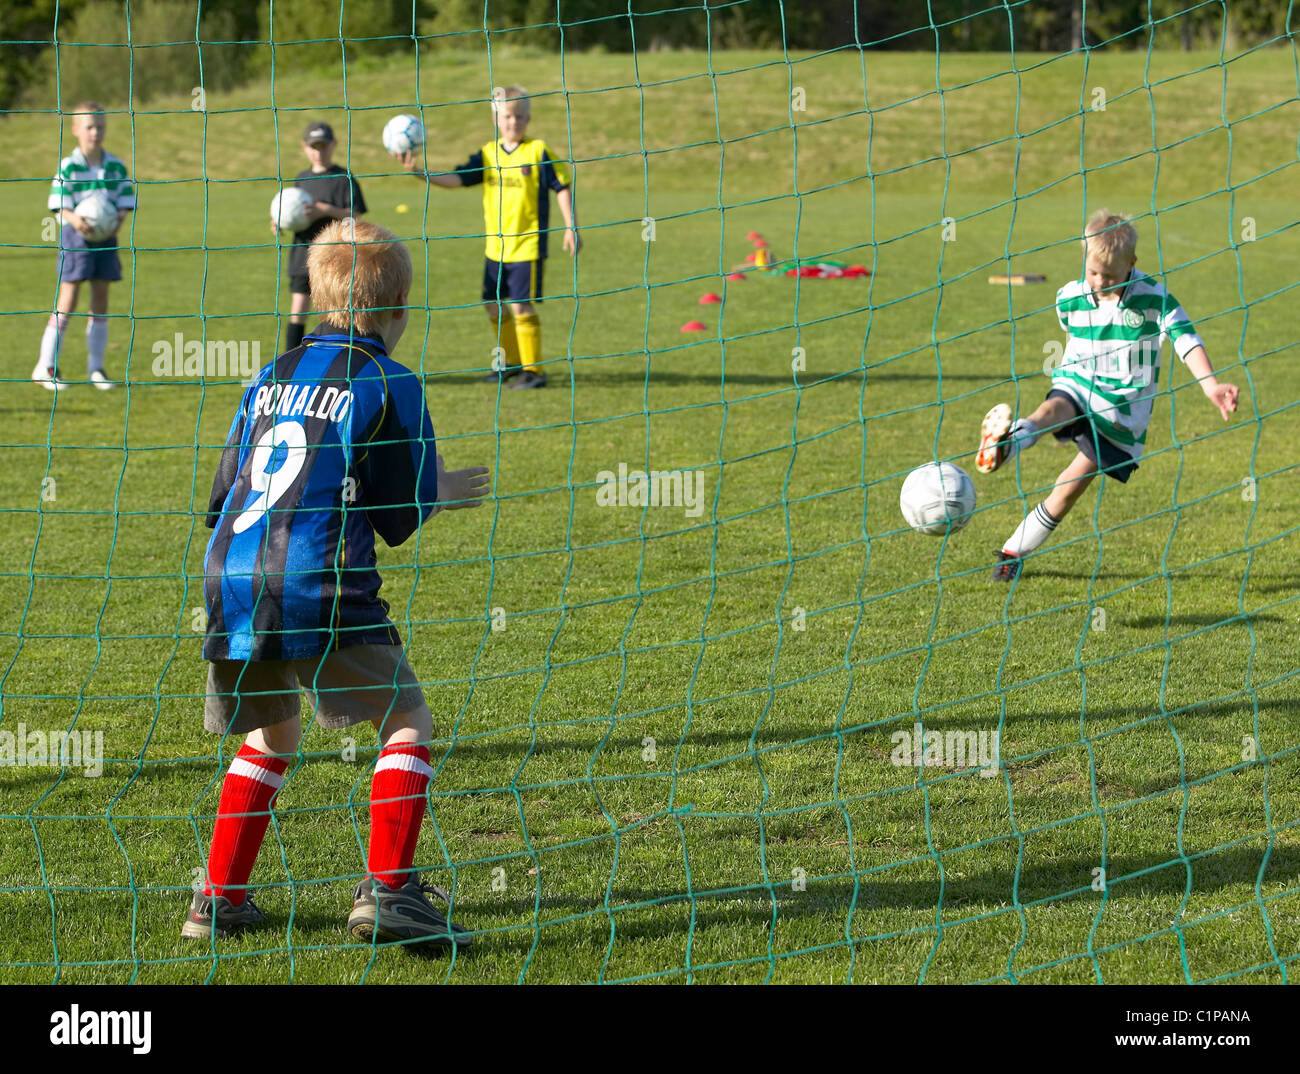 Boys playing soccer - Stock Image